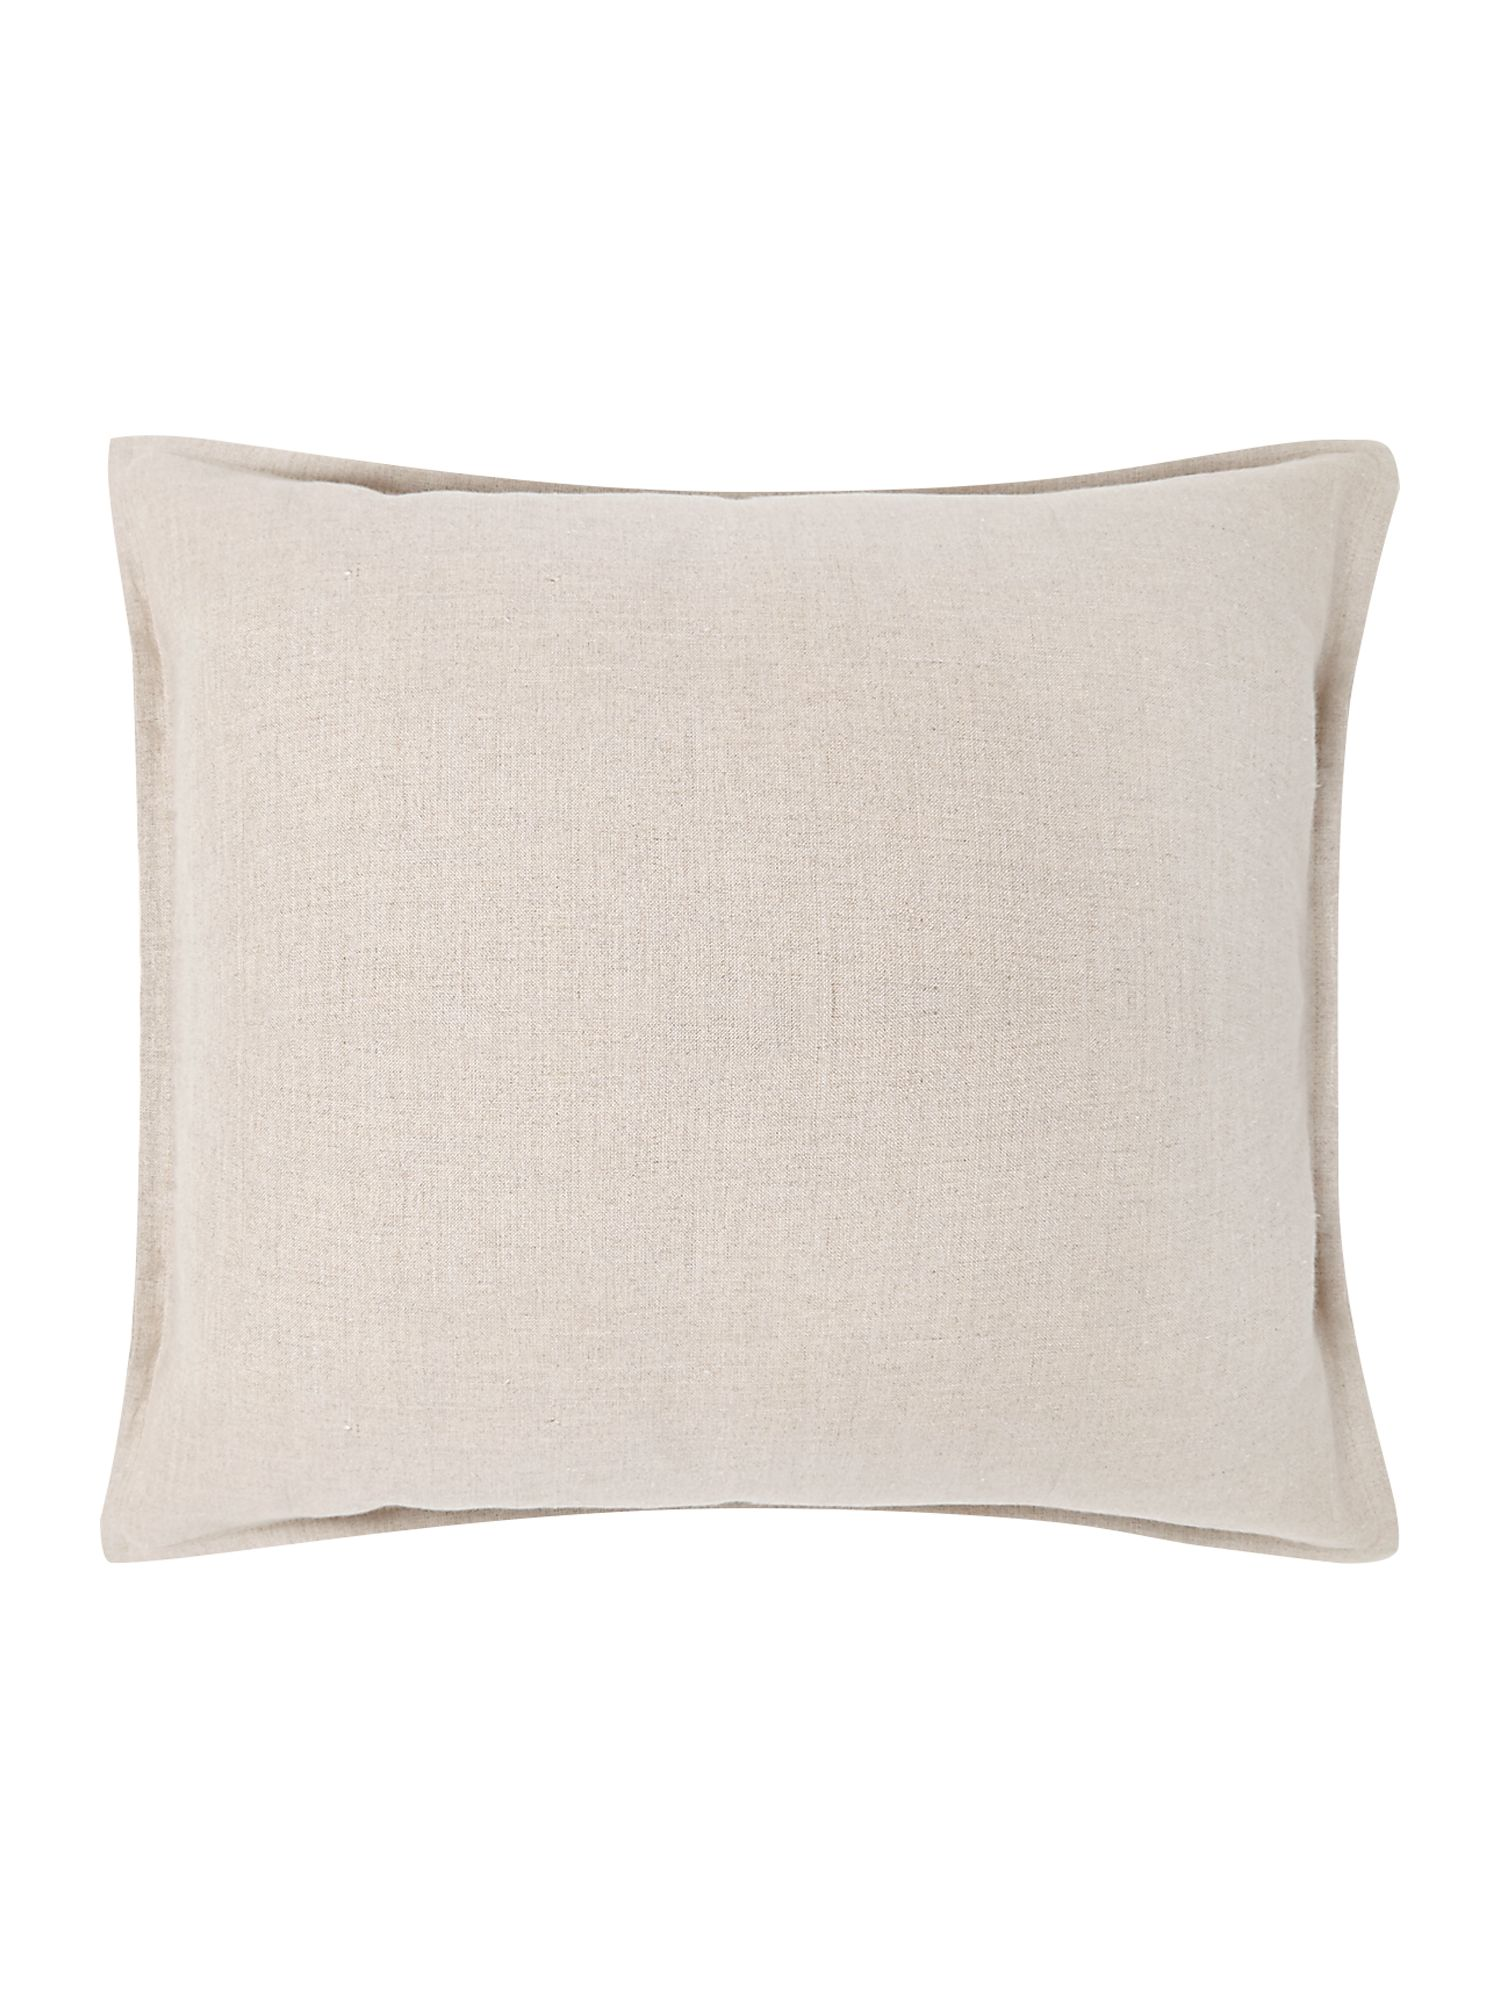 French print linen cushion, cream